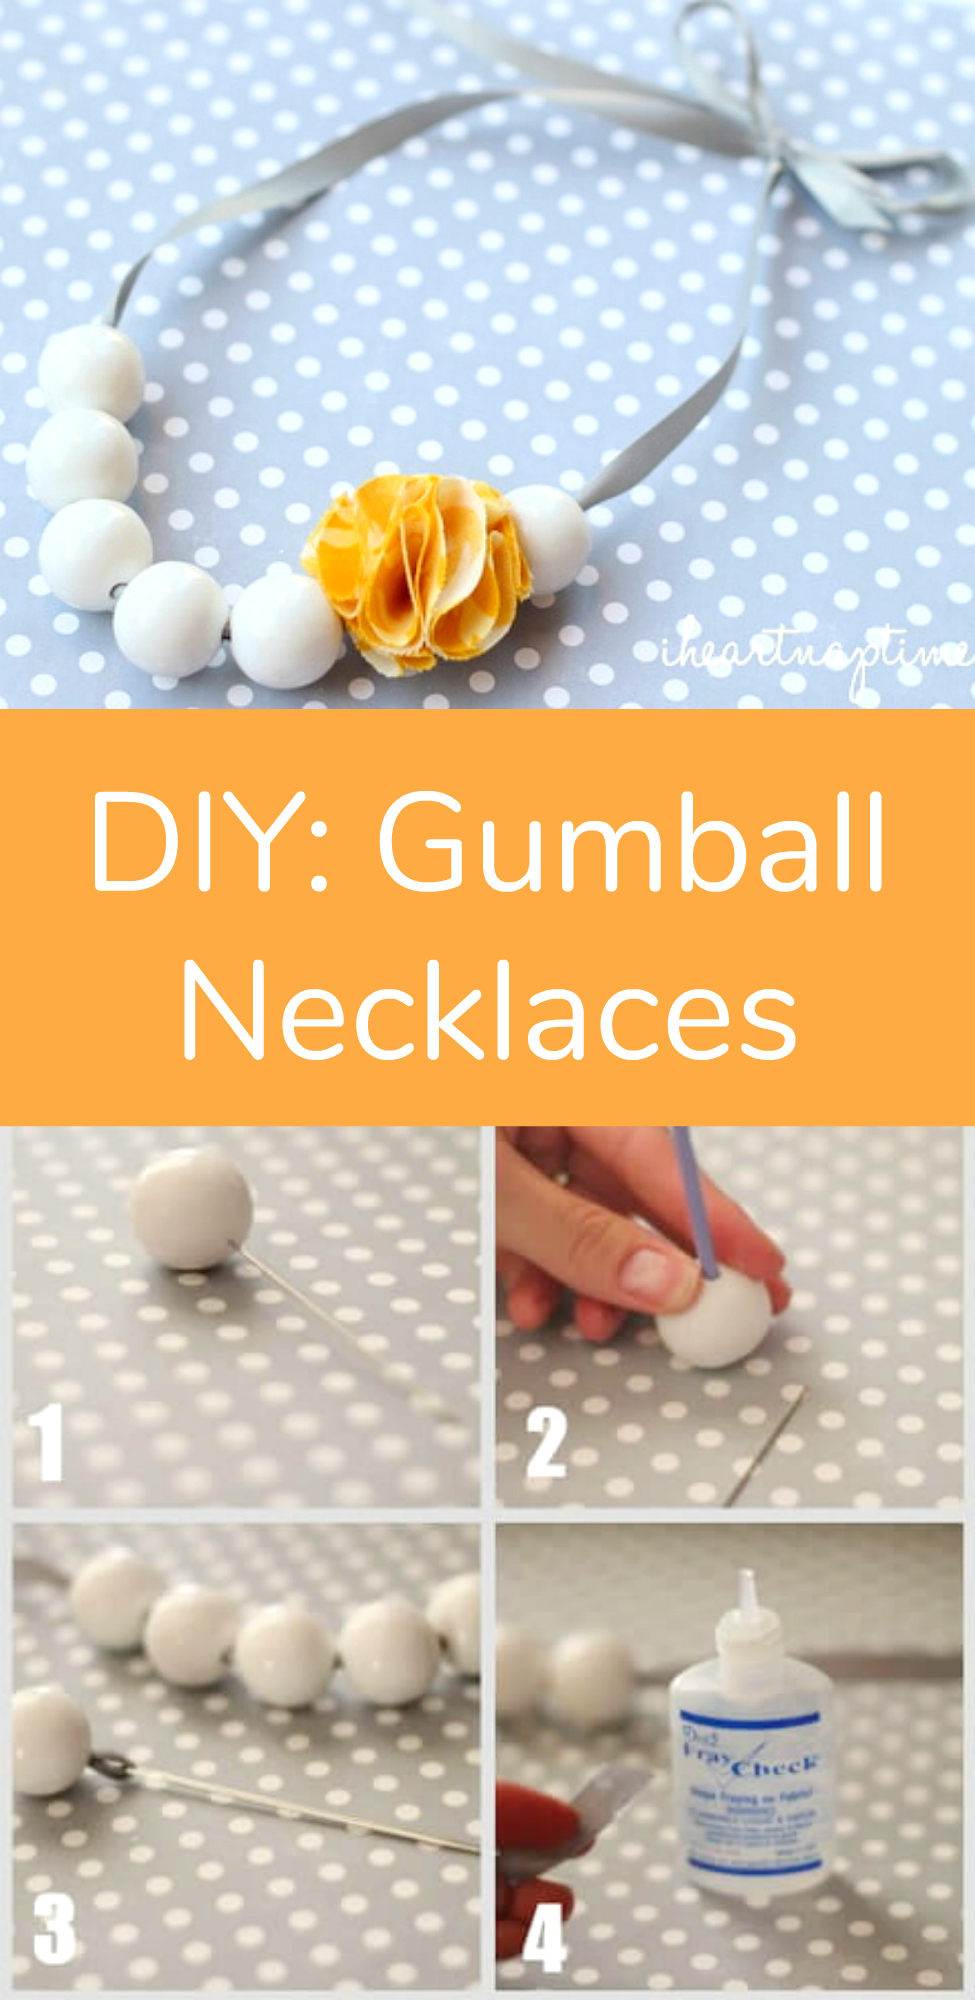 DIY Gumball Necklaces Cute Craft